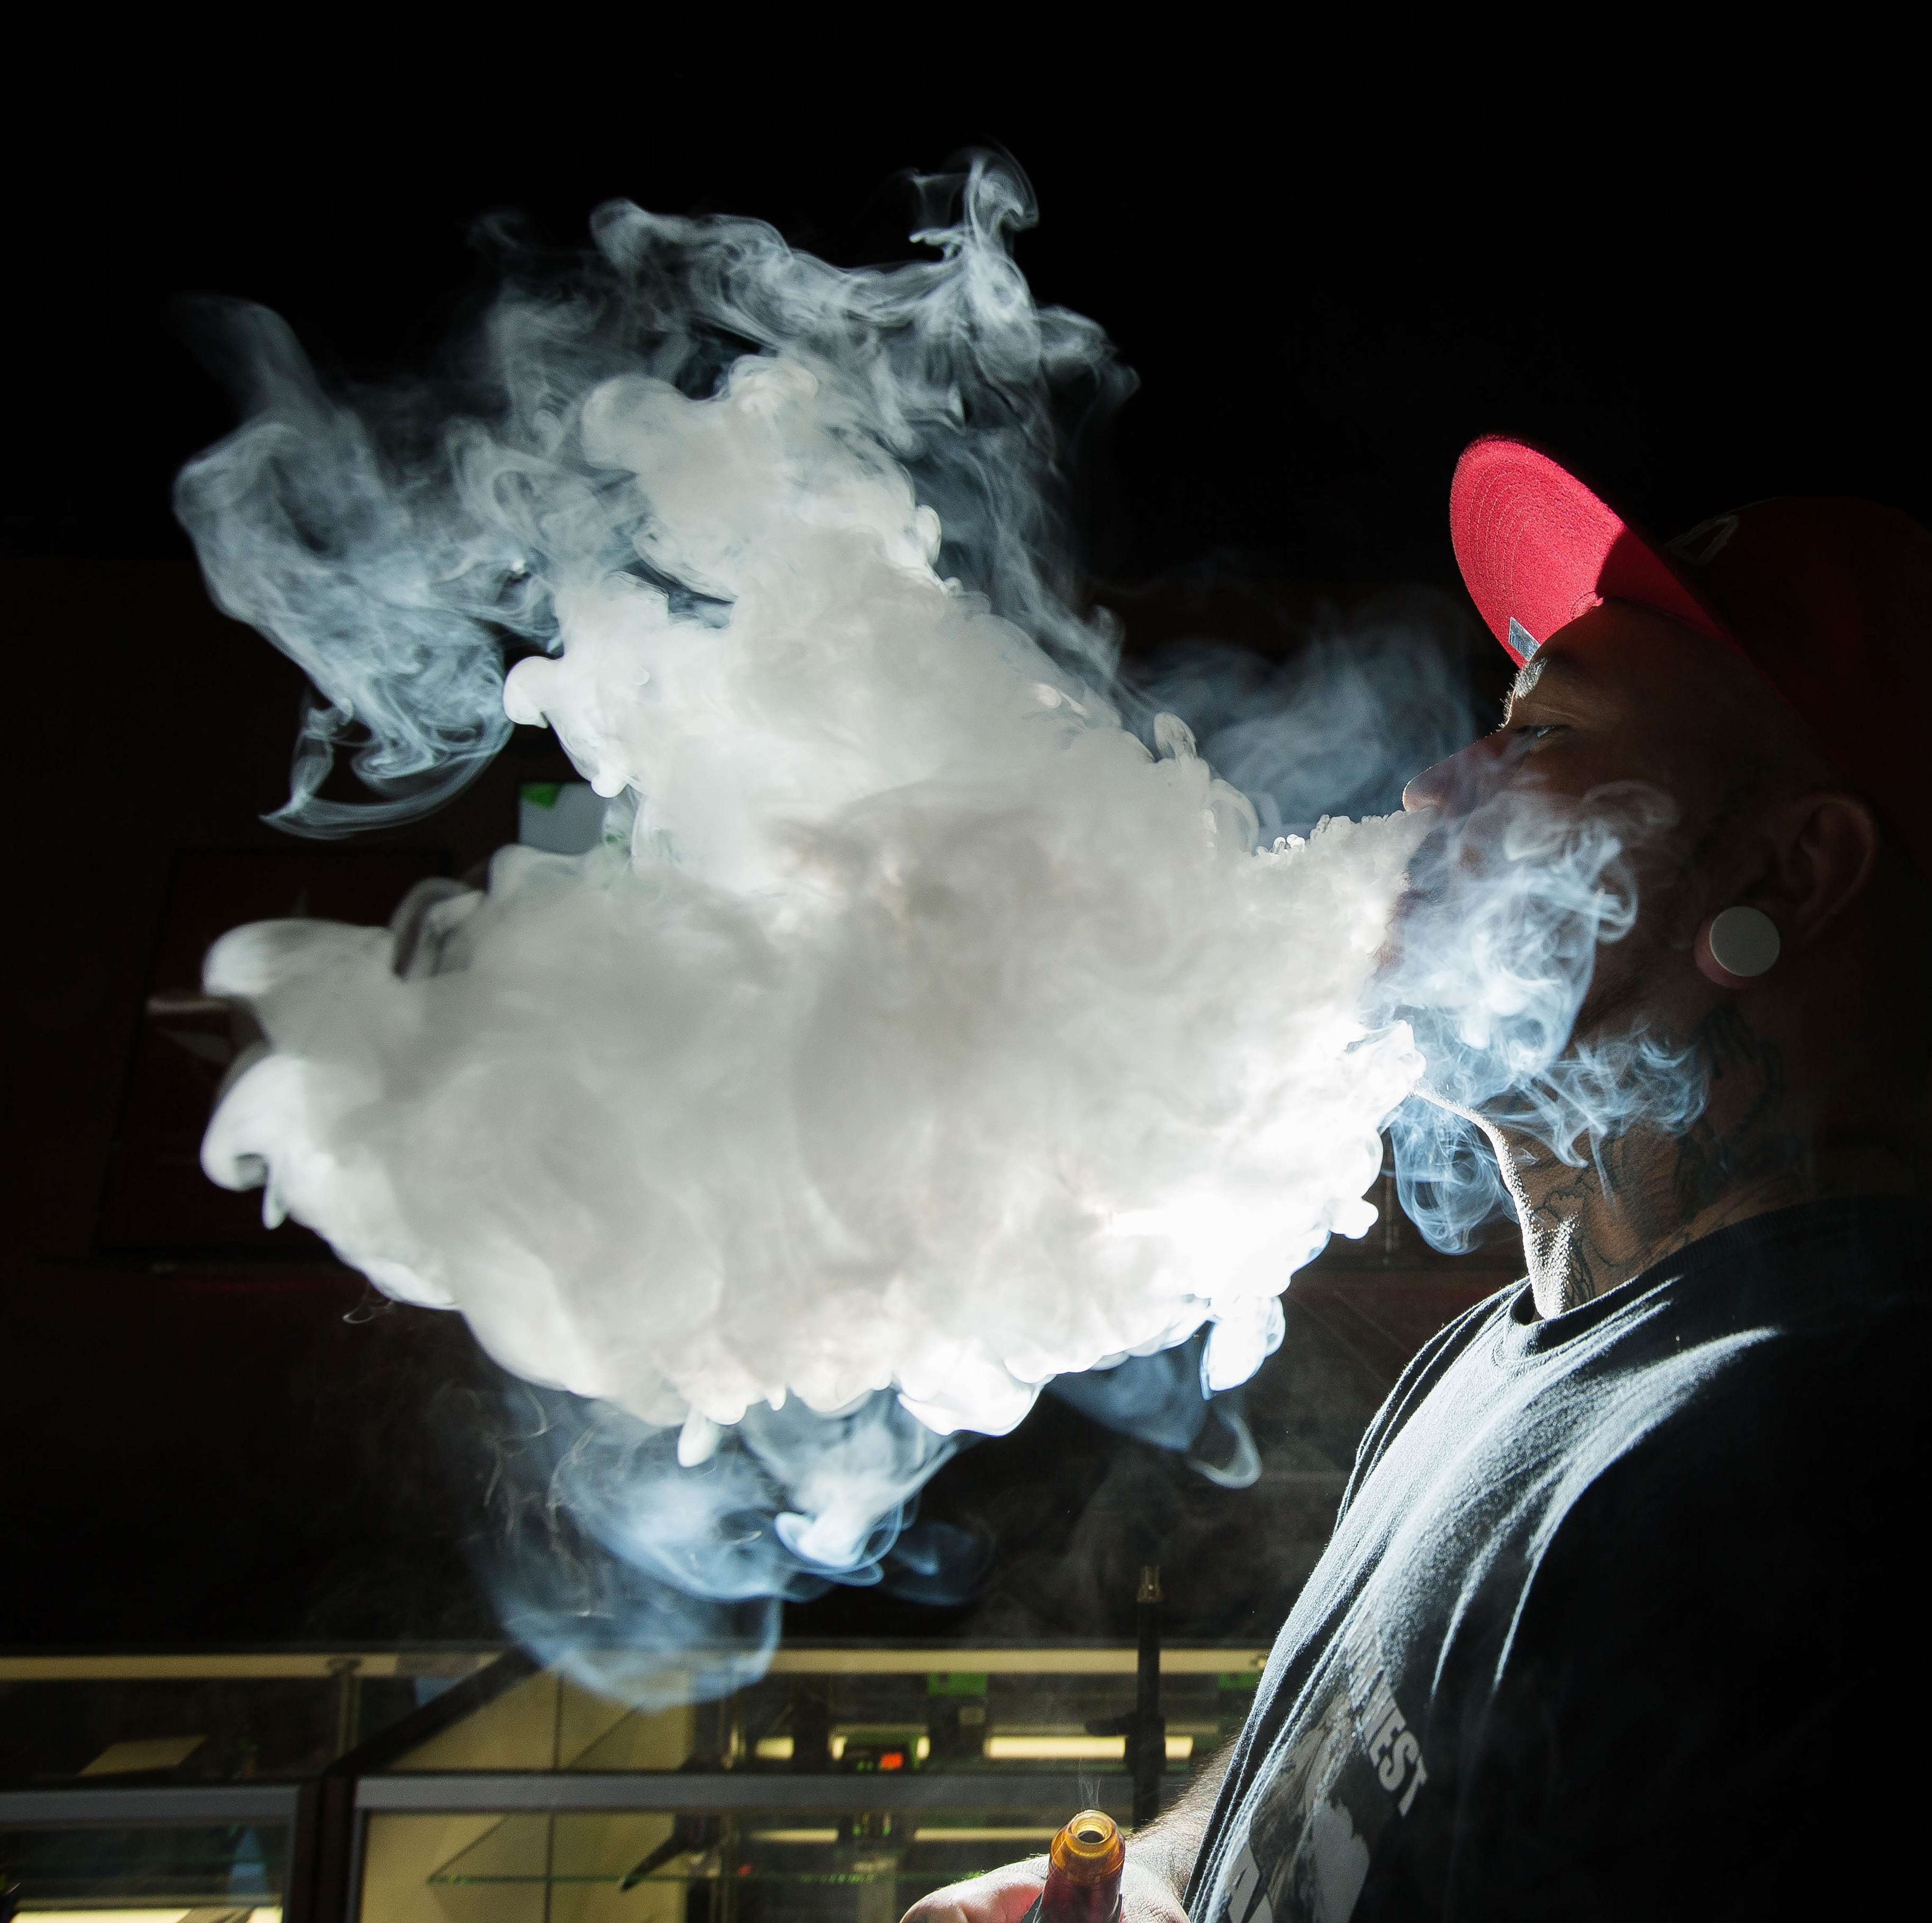 New Mexico preparing to impose new restrictions, tax on vaping